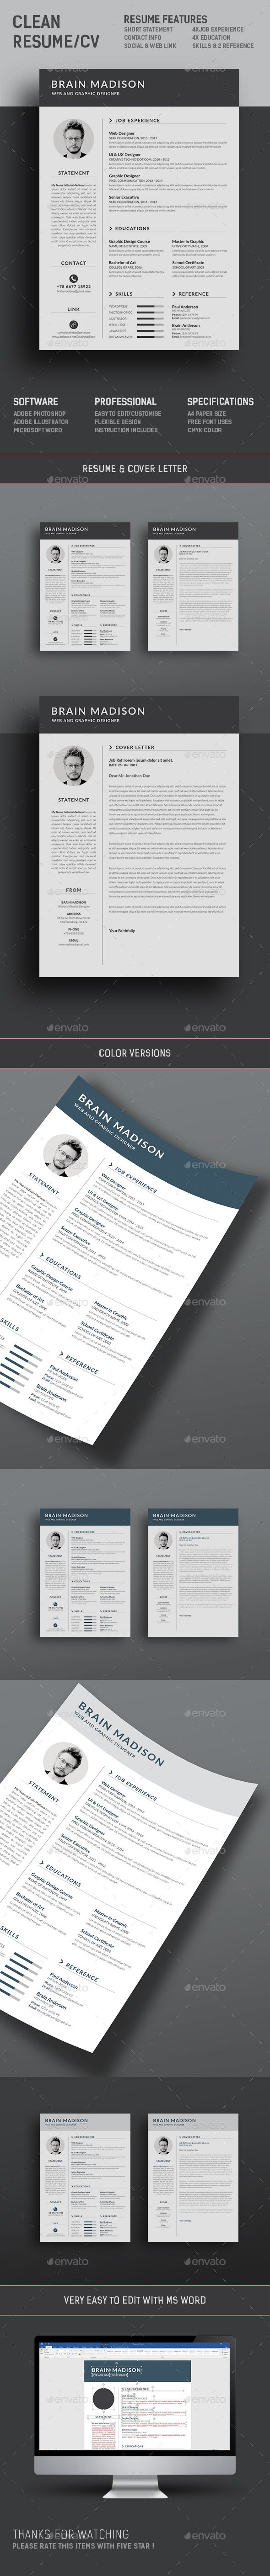 Resume by deviserpark This is a simple clean resume template focusing Name,Experience,Education and Skills which includes Resume & Cover Letter.Internat